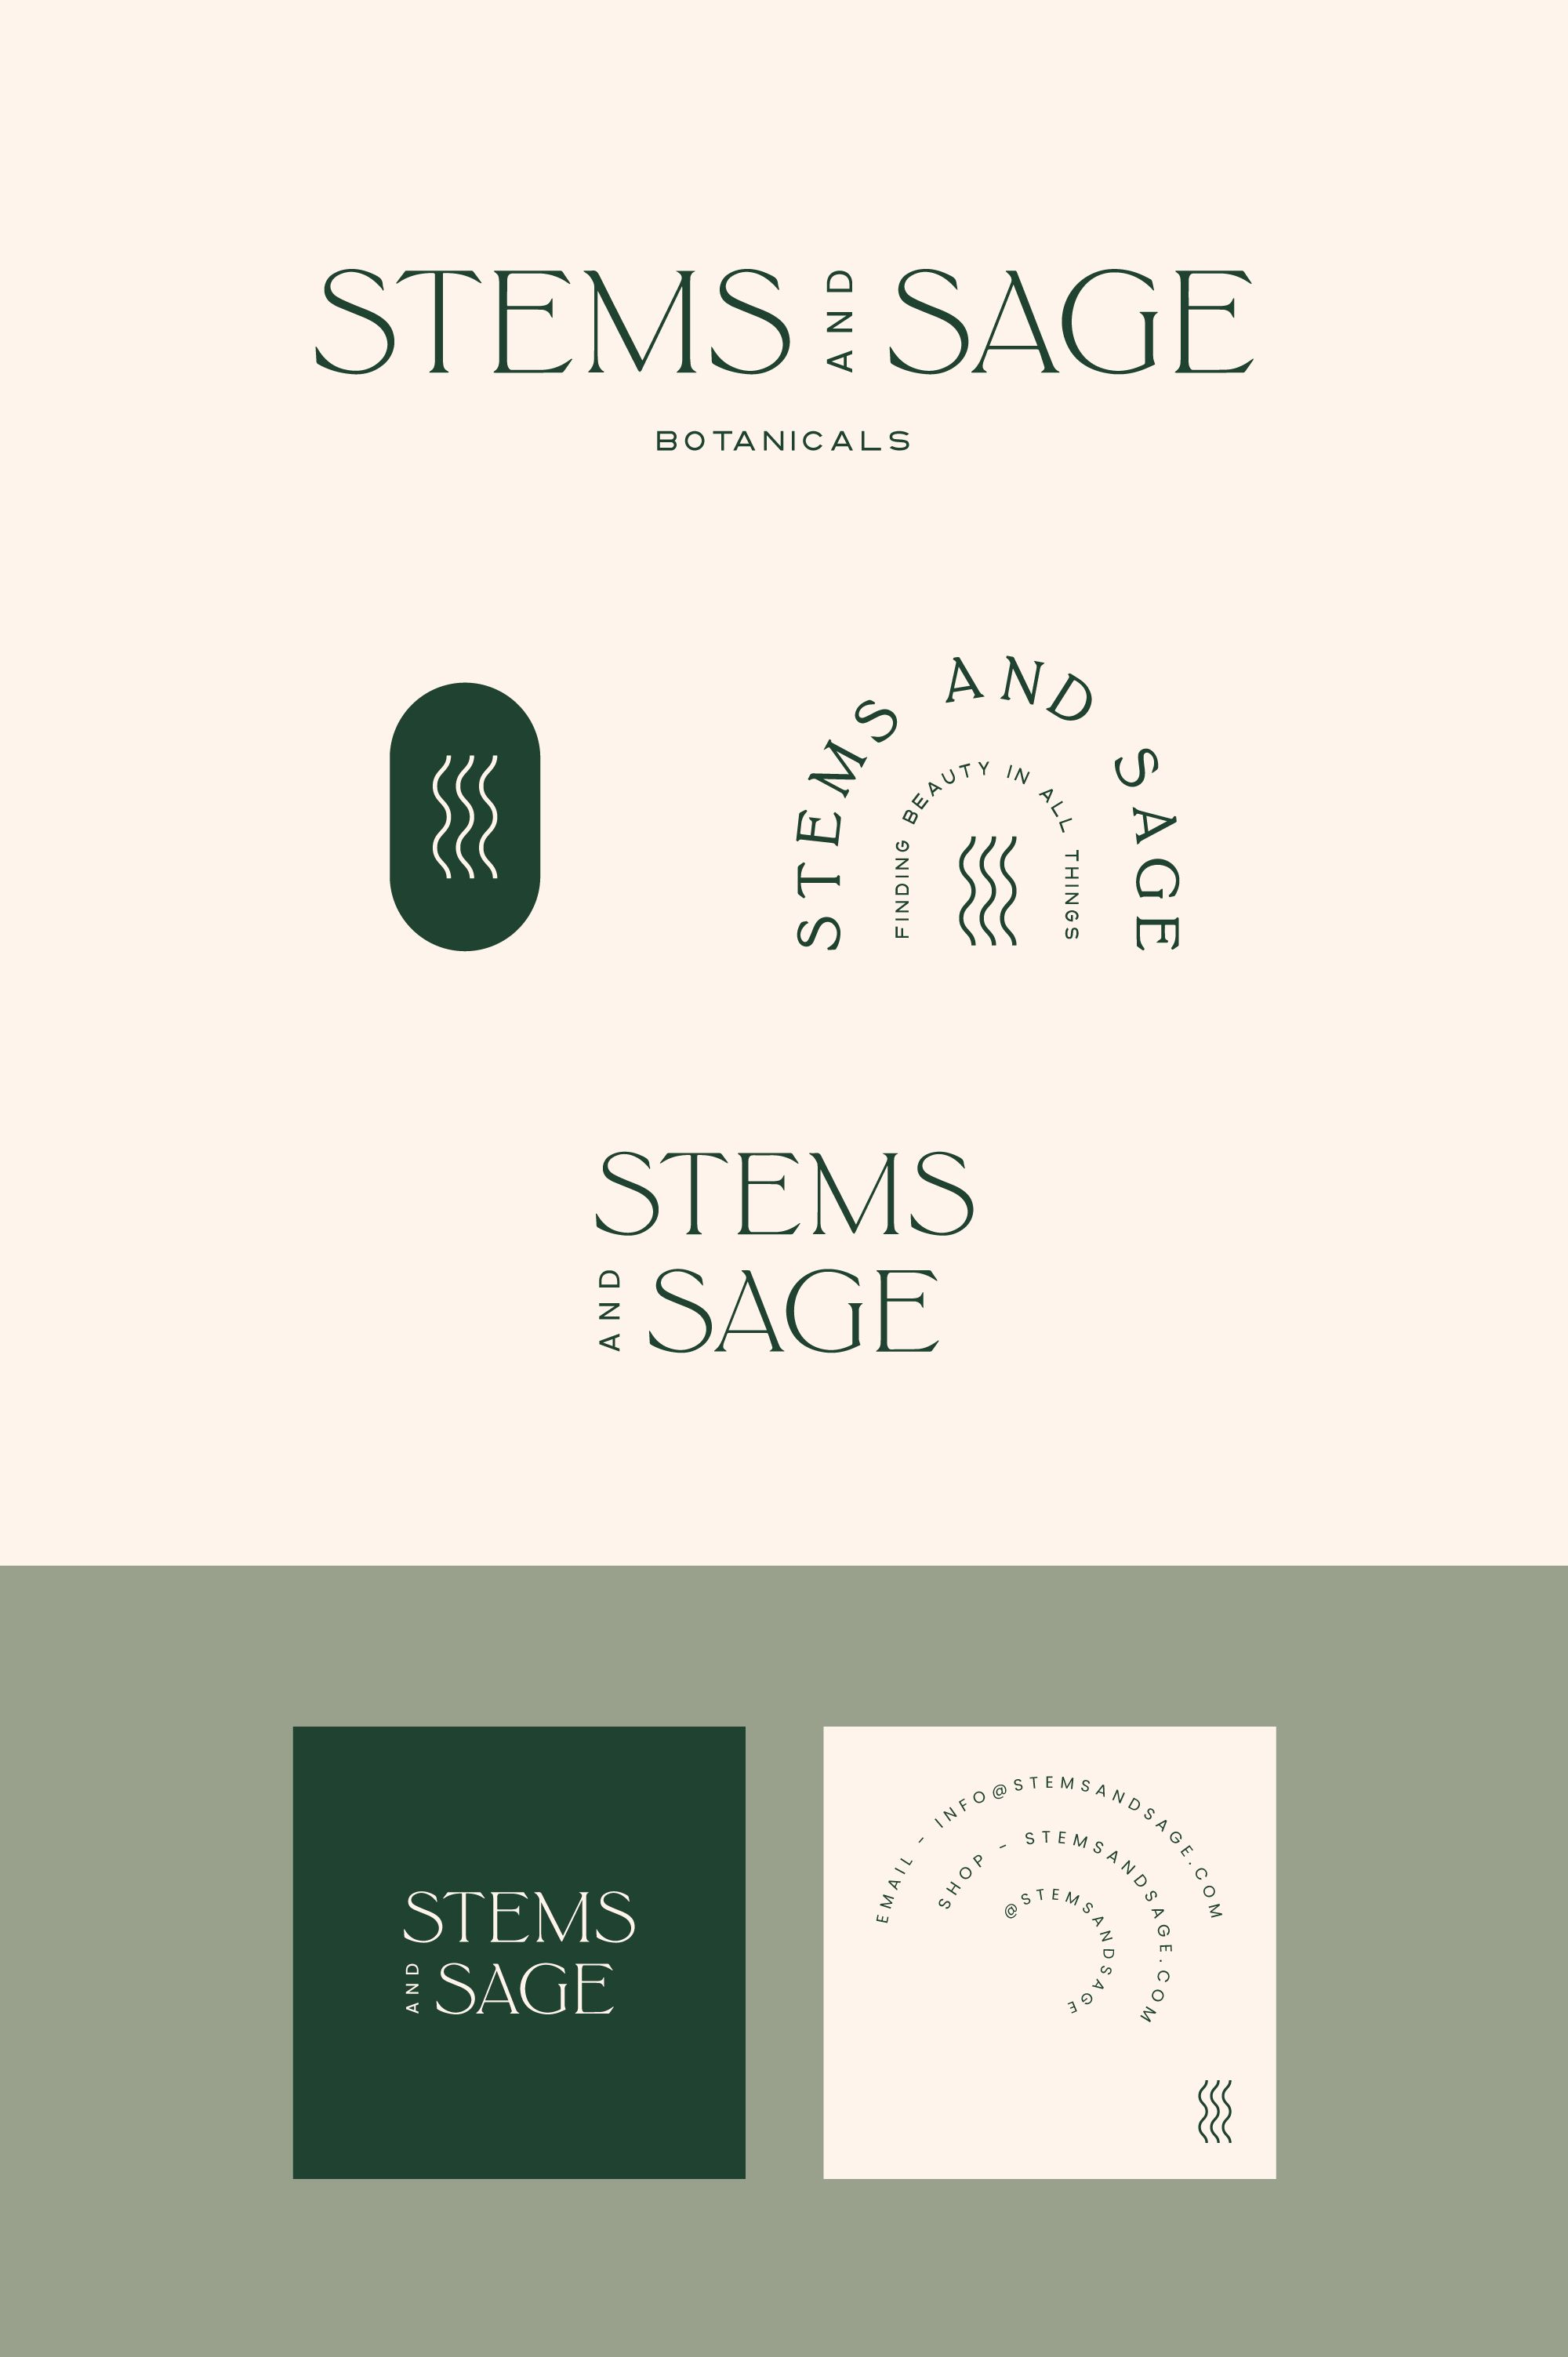 Stems & Sage Brand Kit — Mint Lane